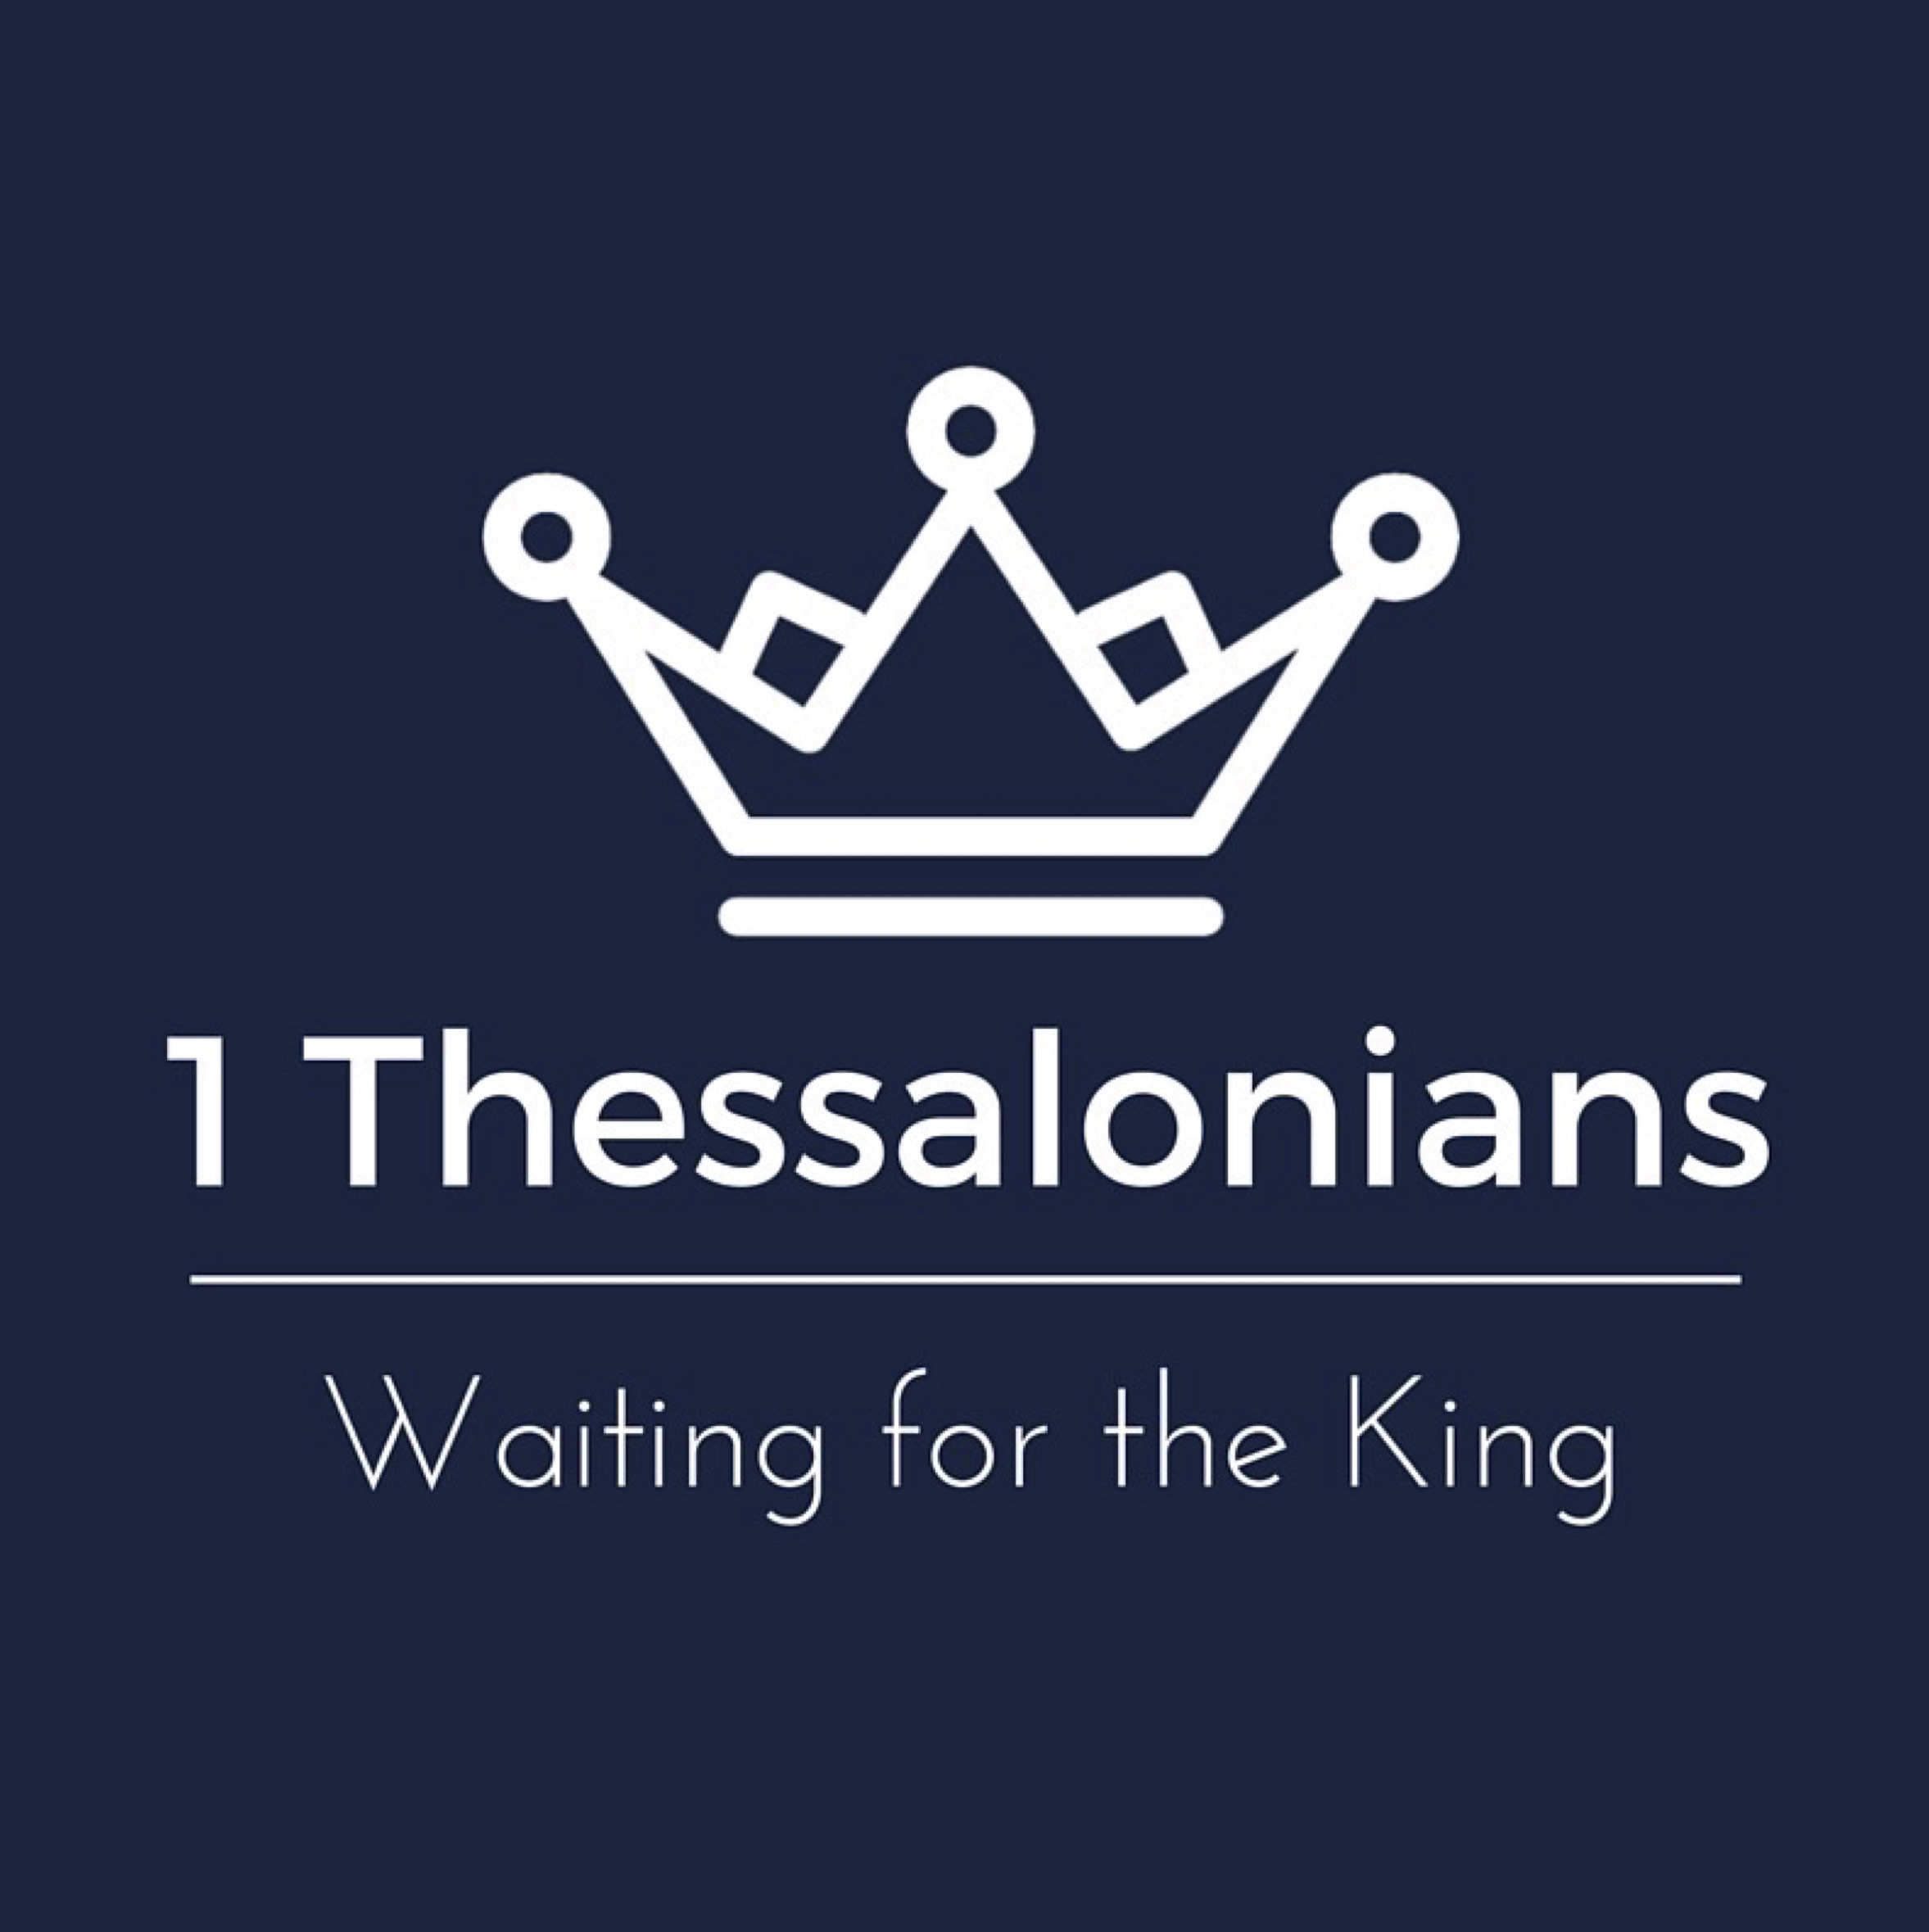 1 Thessalonians Week 6: Final Instructions